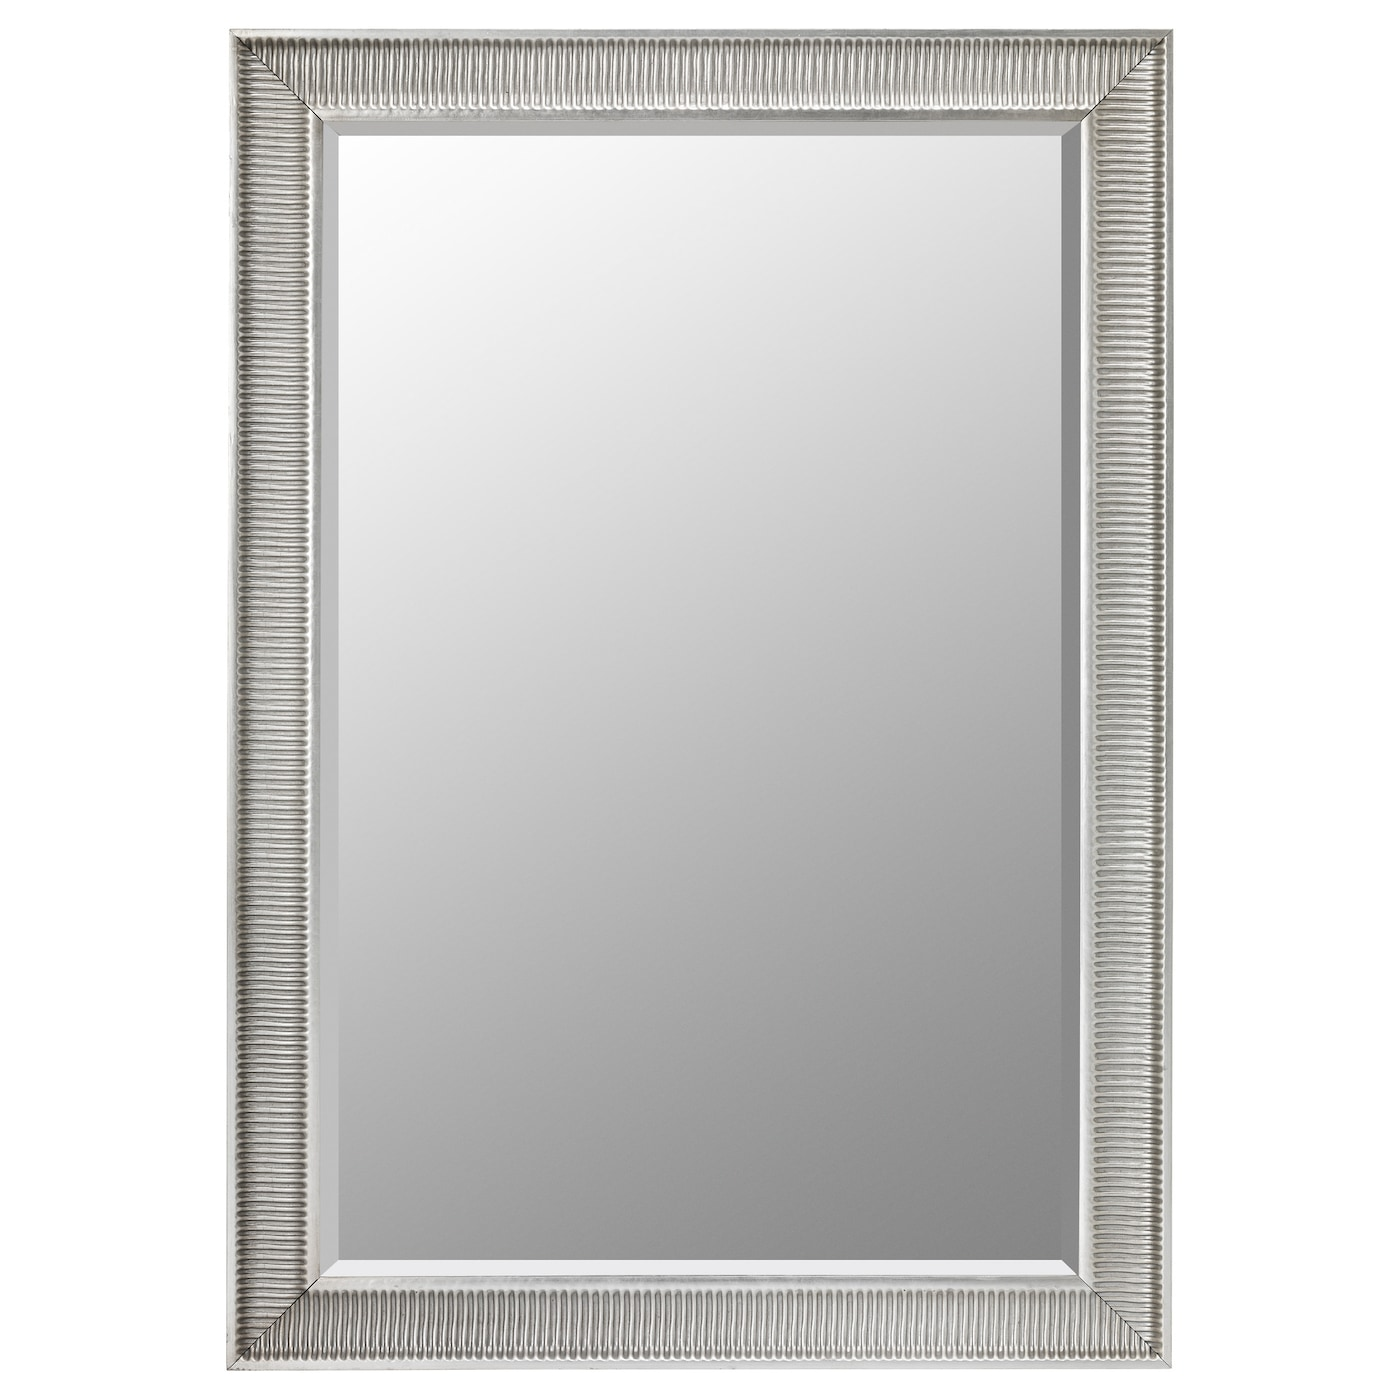 Songe mirror silver colour 91x130 cm ikea for Where to find mirrors